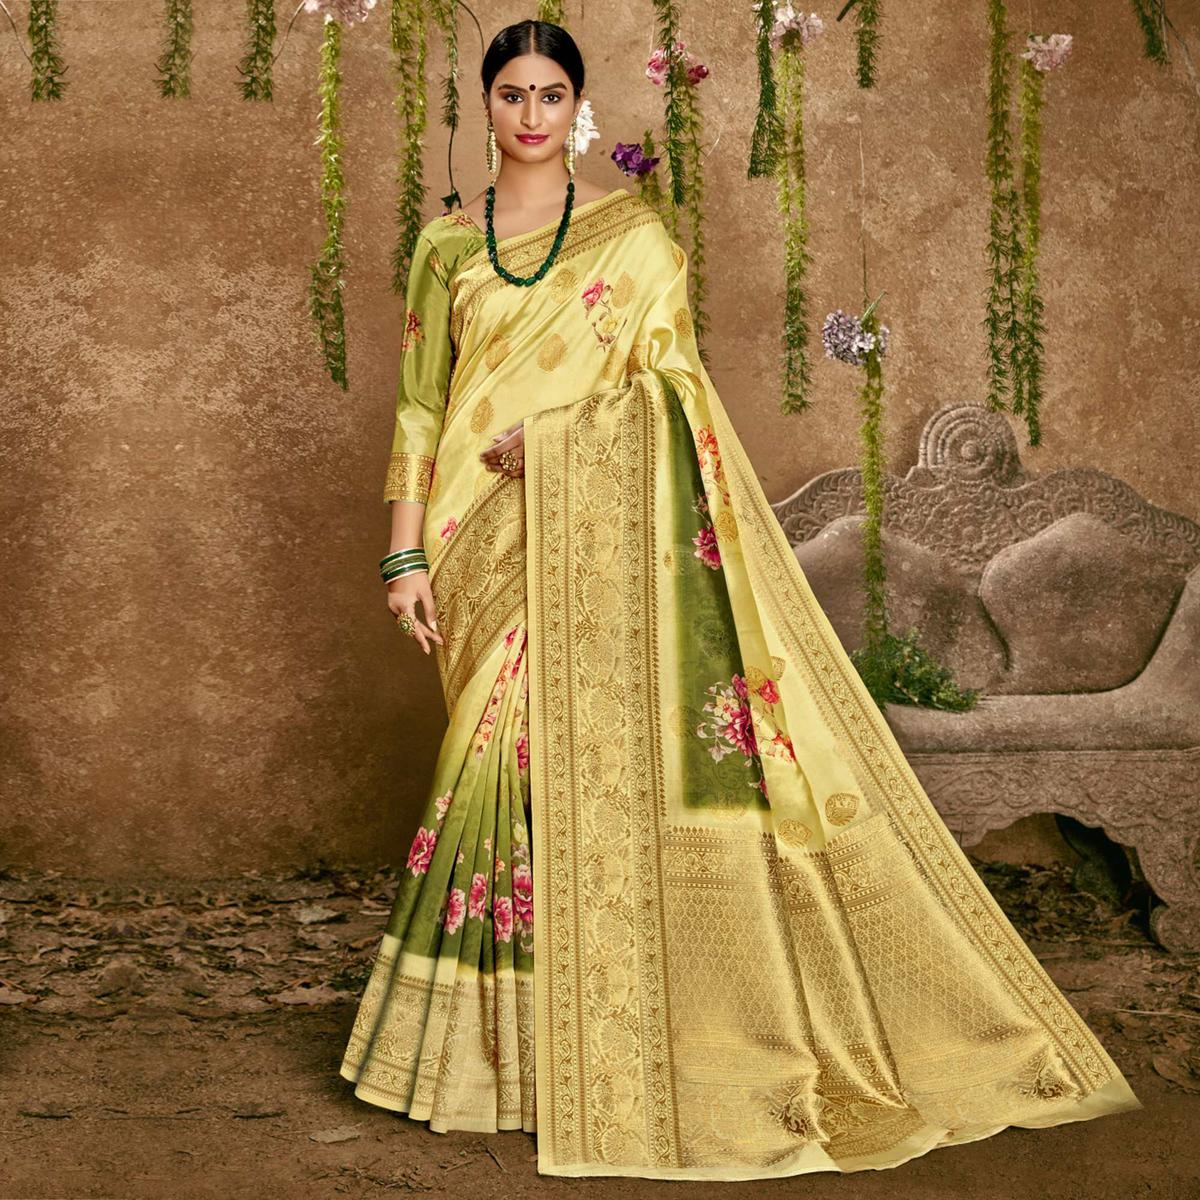 Triveni - Yellow & Green Color Art Silk Party Wear Saree With Blouse Piece